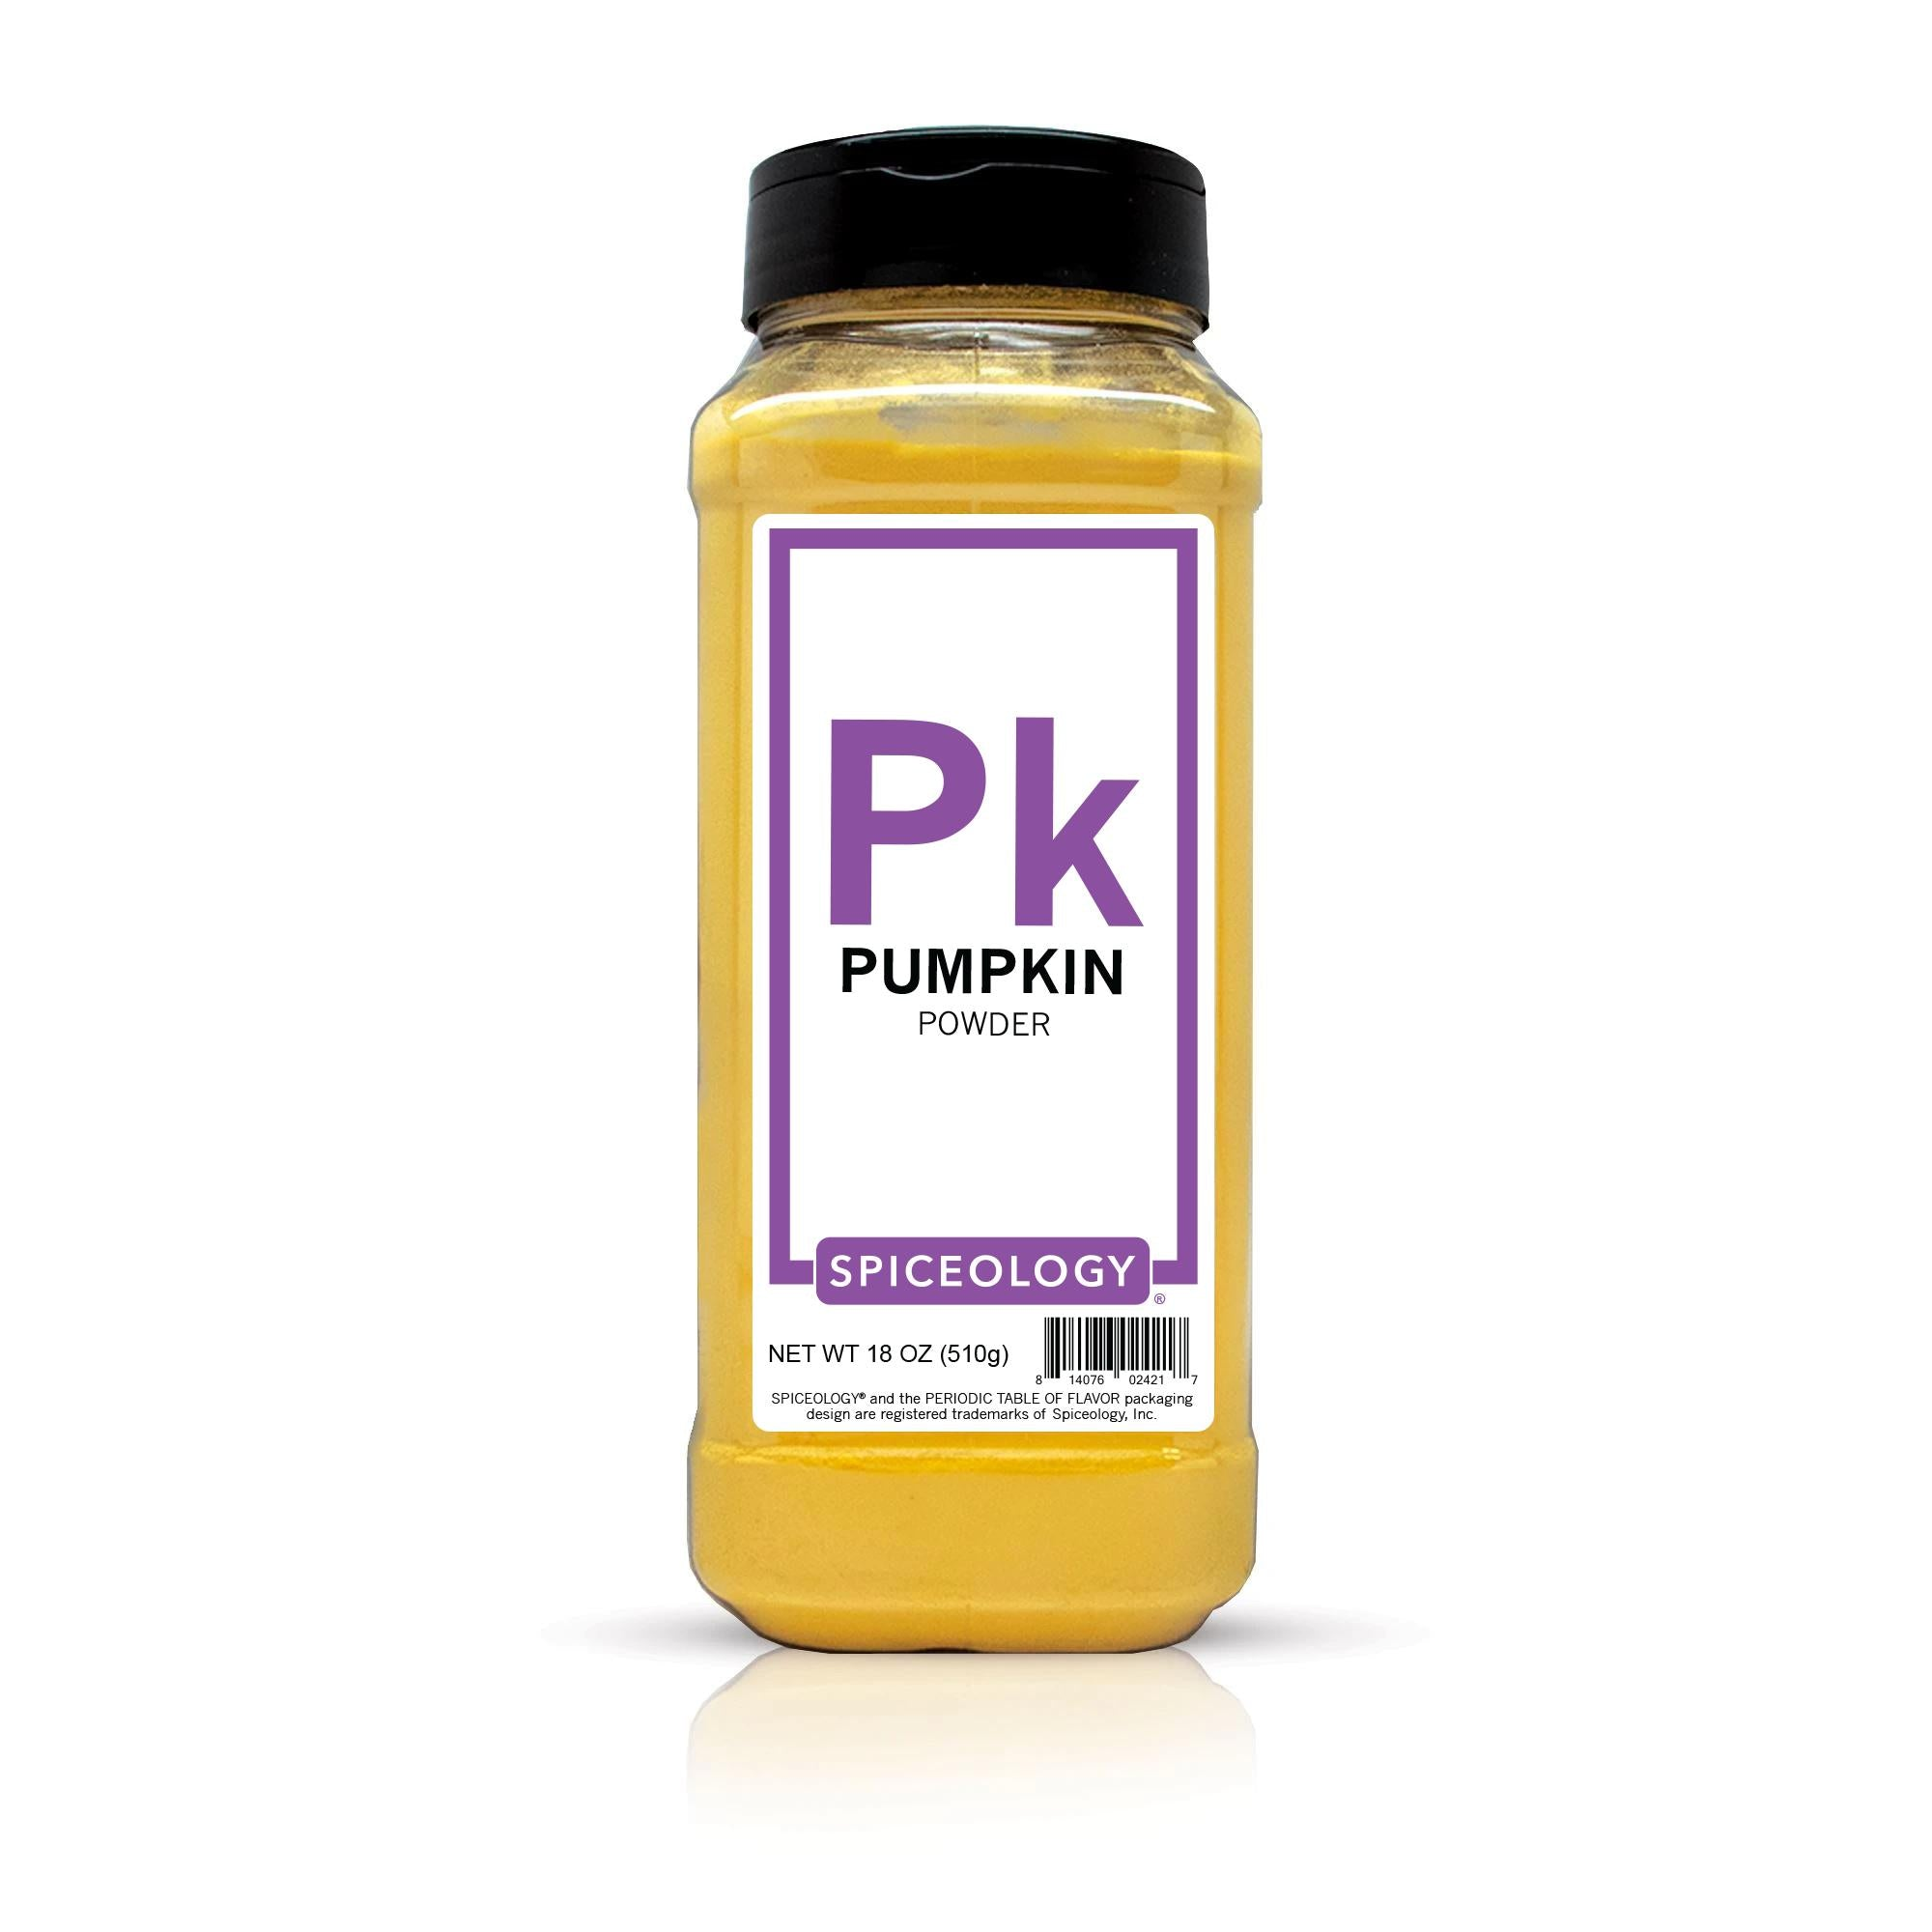 Pumpkin Powder